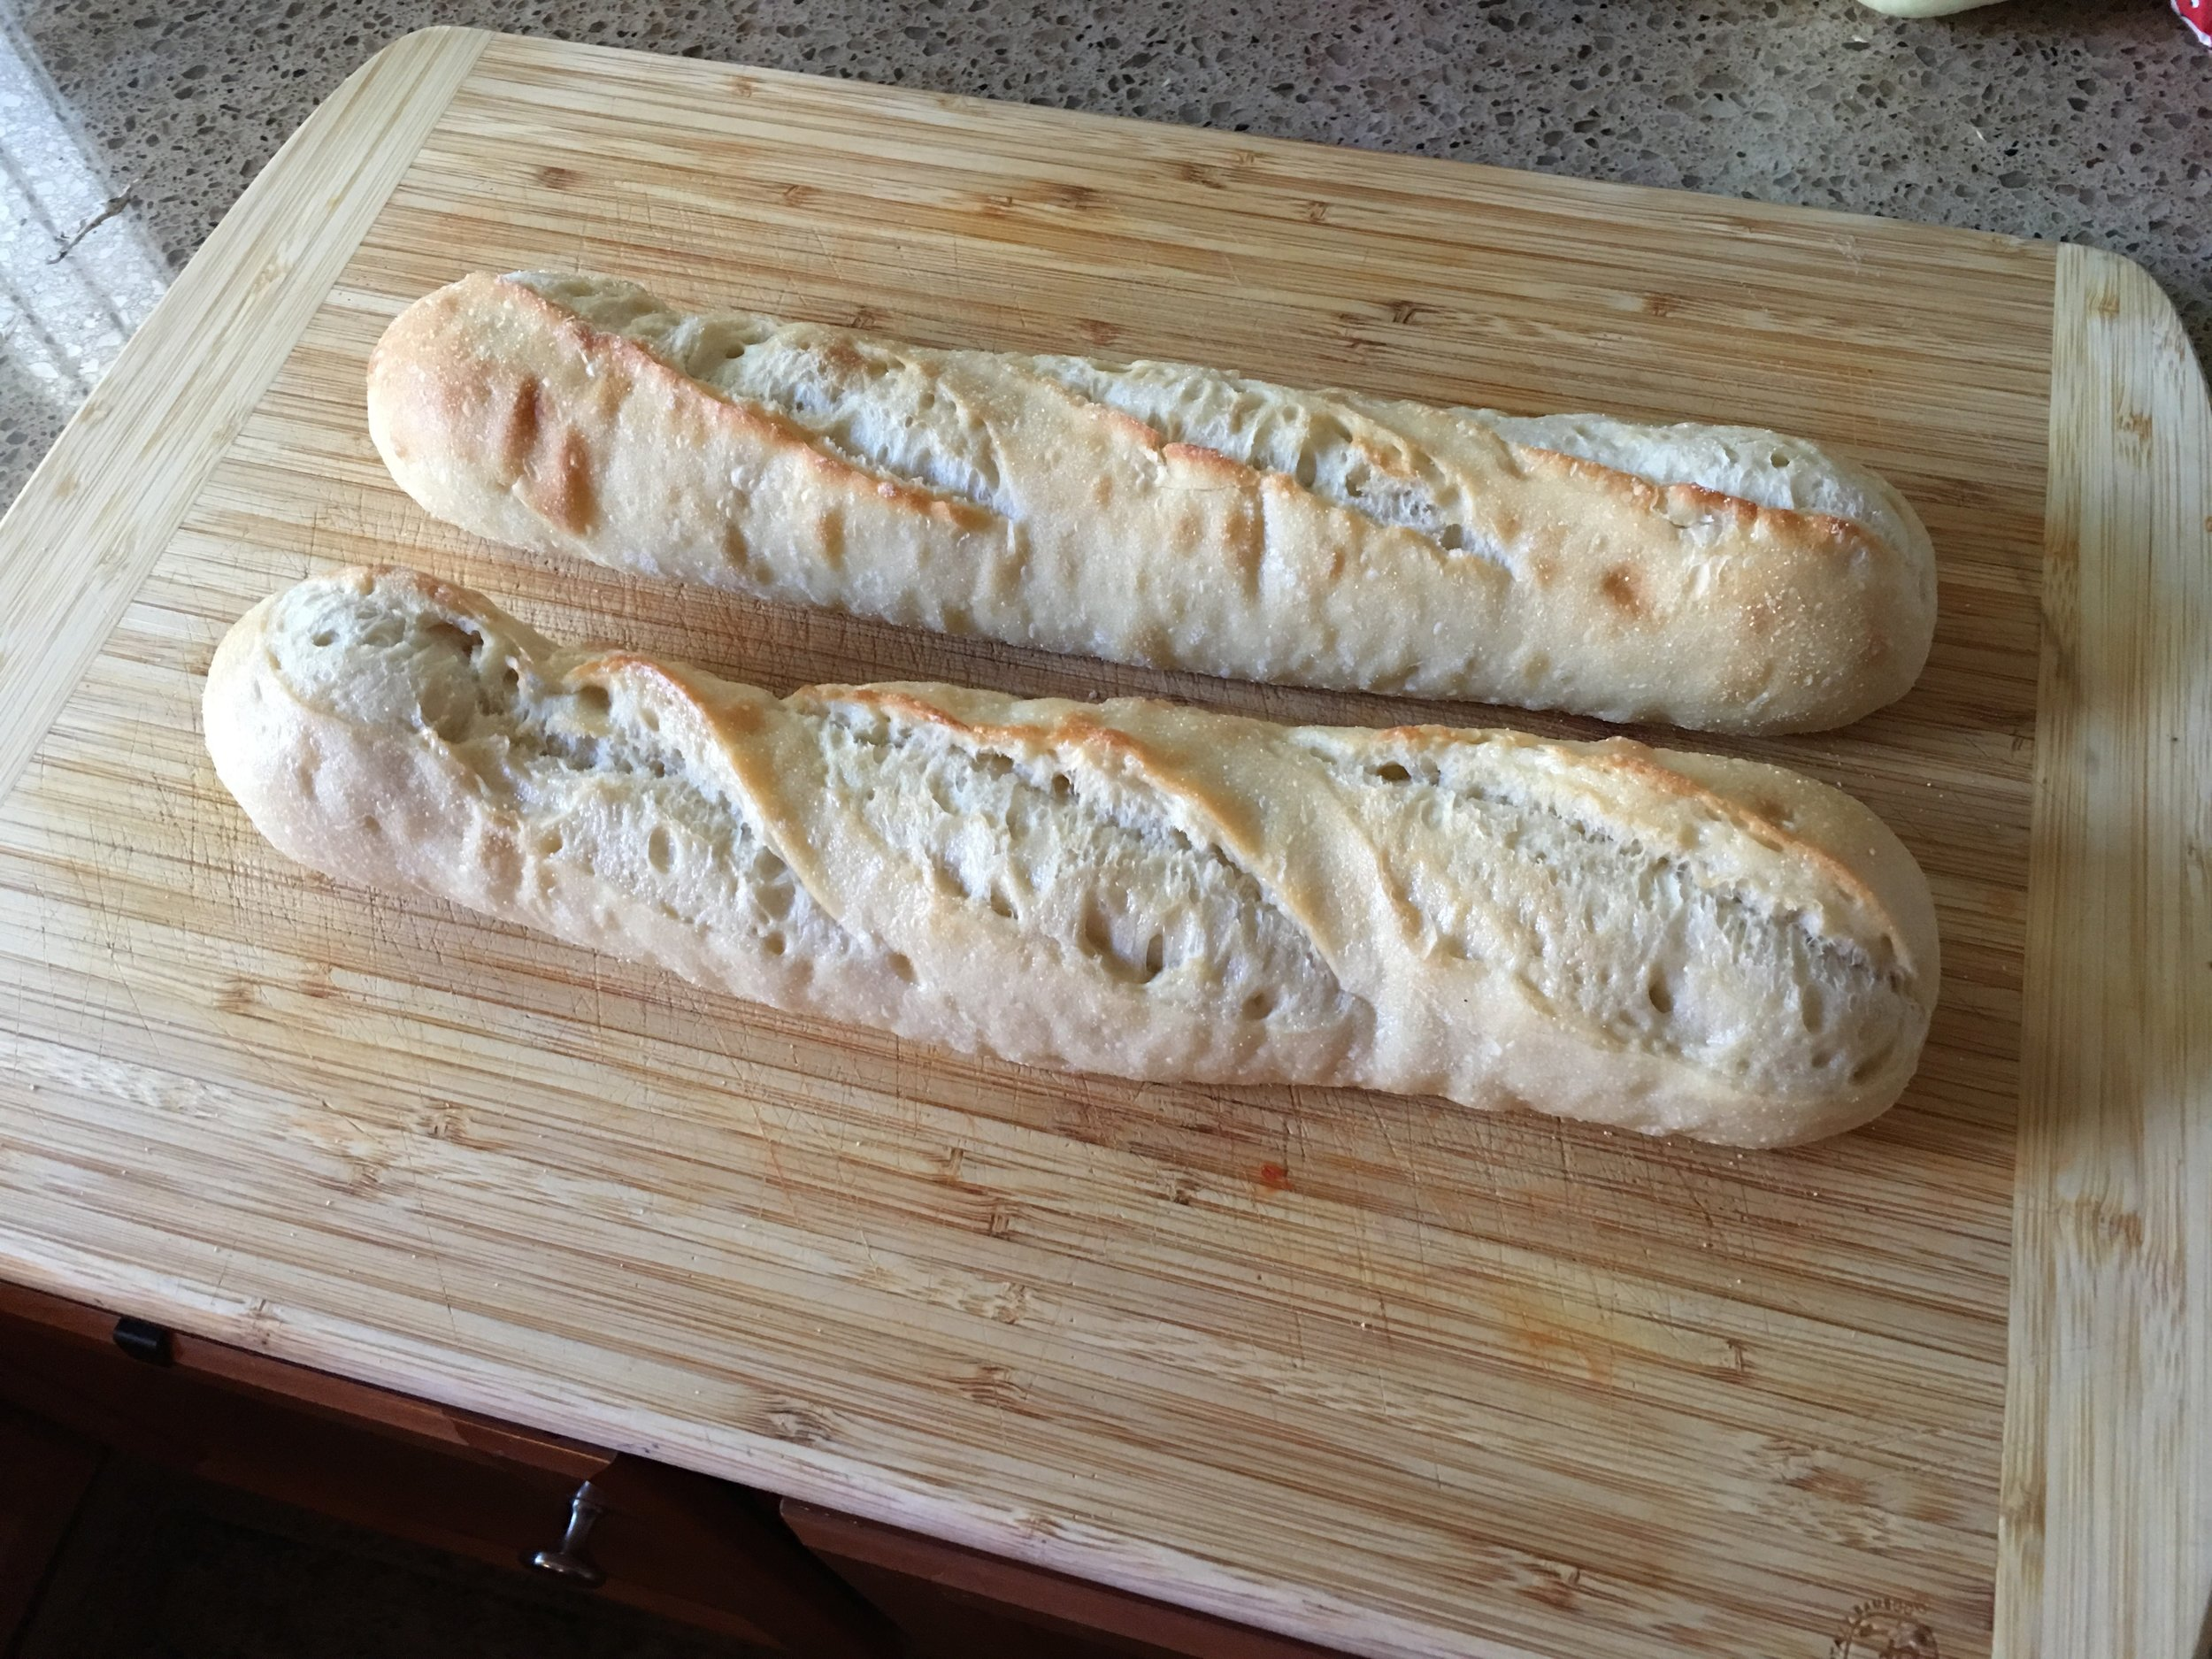 NEED TWO LOAVES FRENCH BREAD